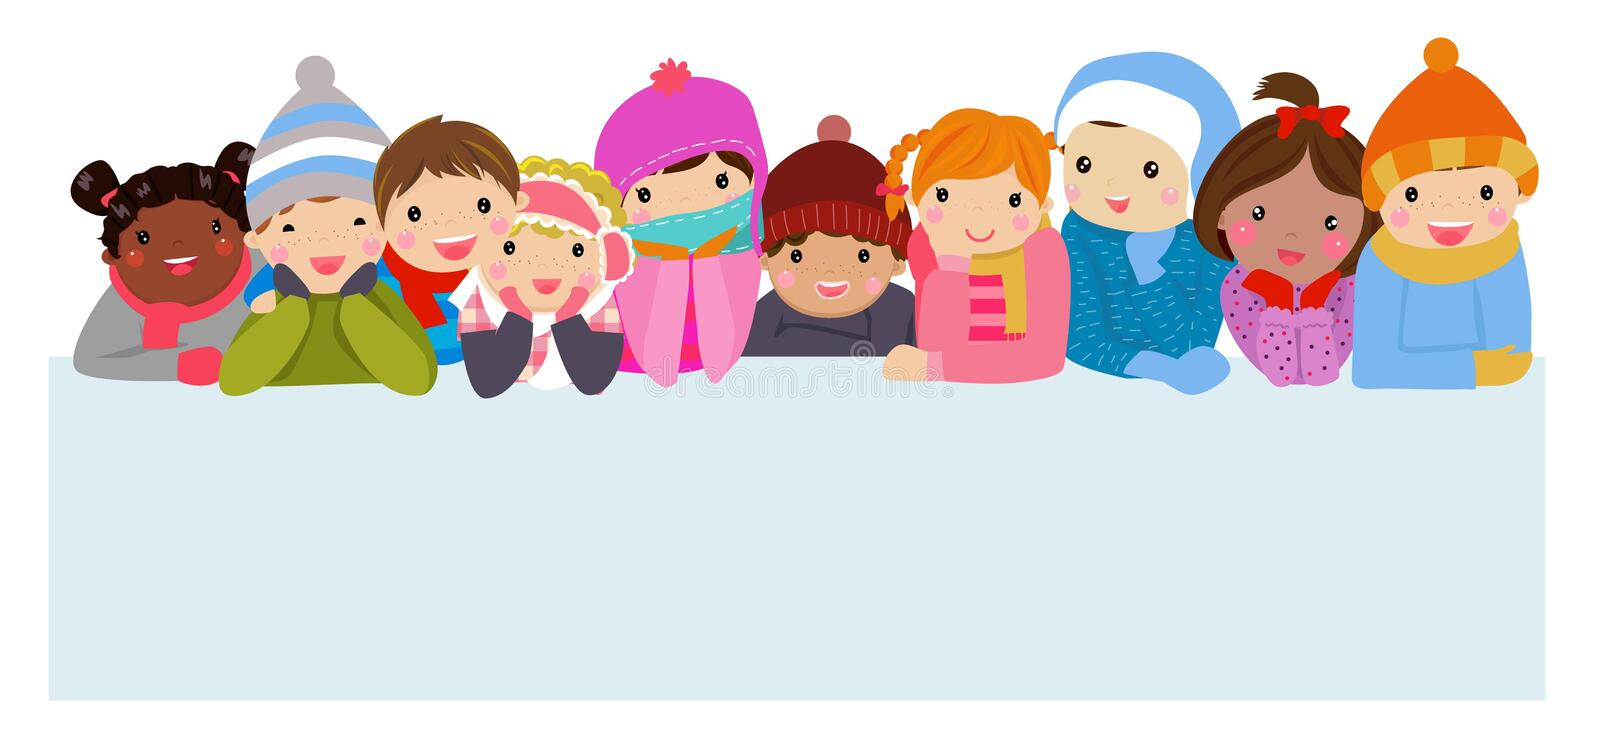 Group of winter children and banner royalty free illustration